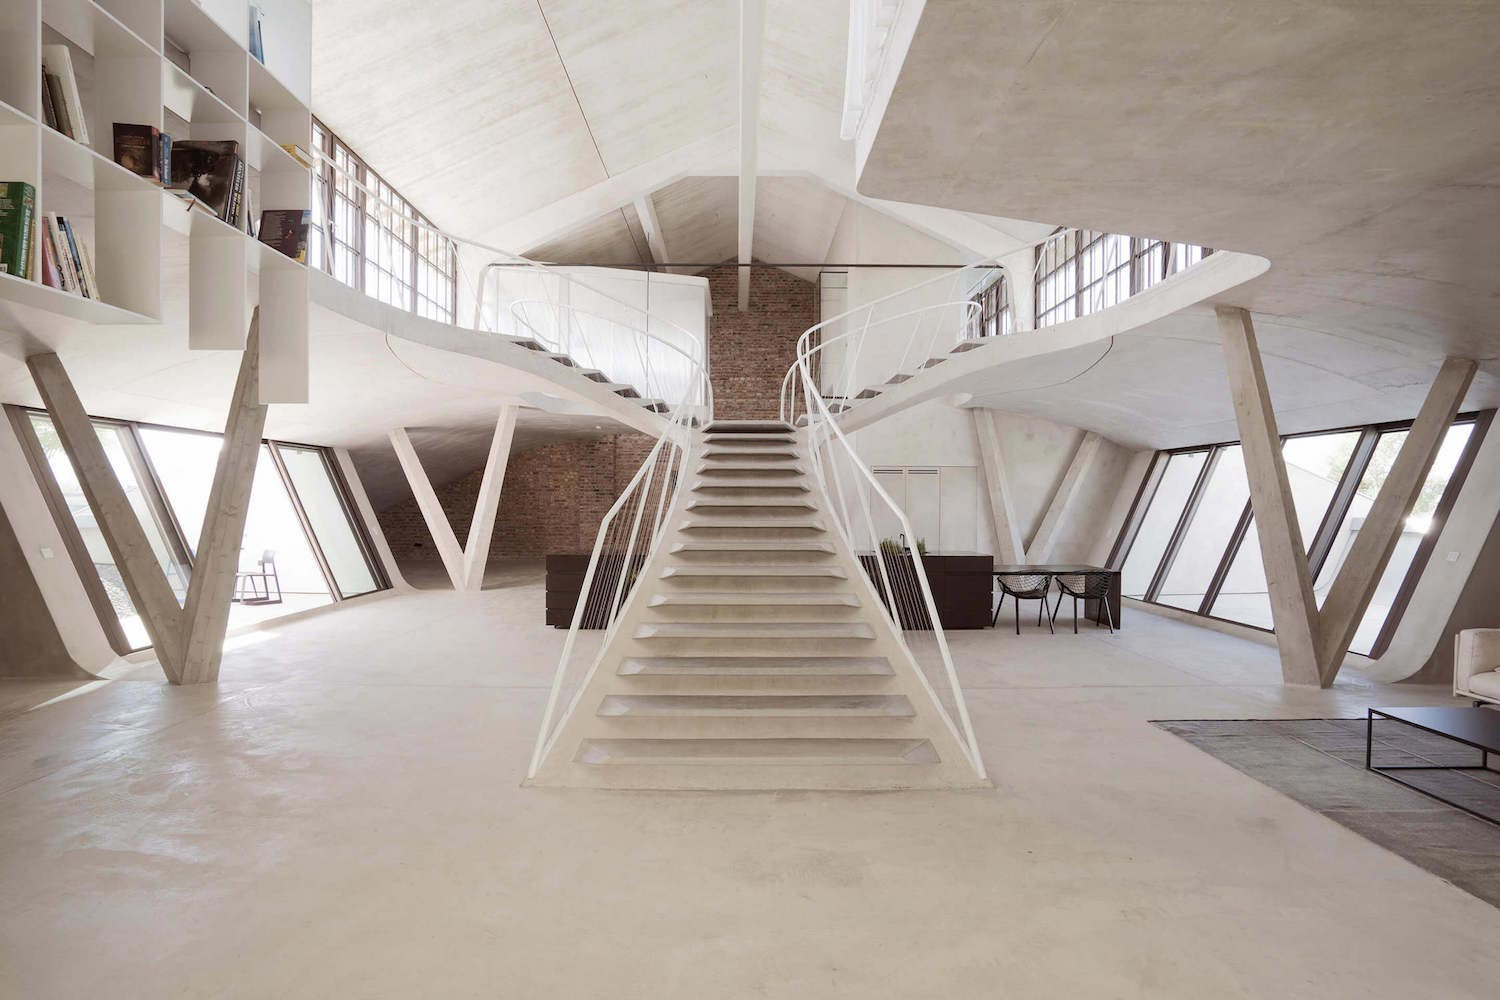 Concrete Rooms Rounded Concrete Staircase Opens Up All Rooms And Also Appears To